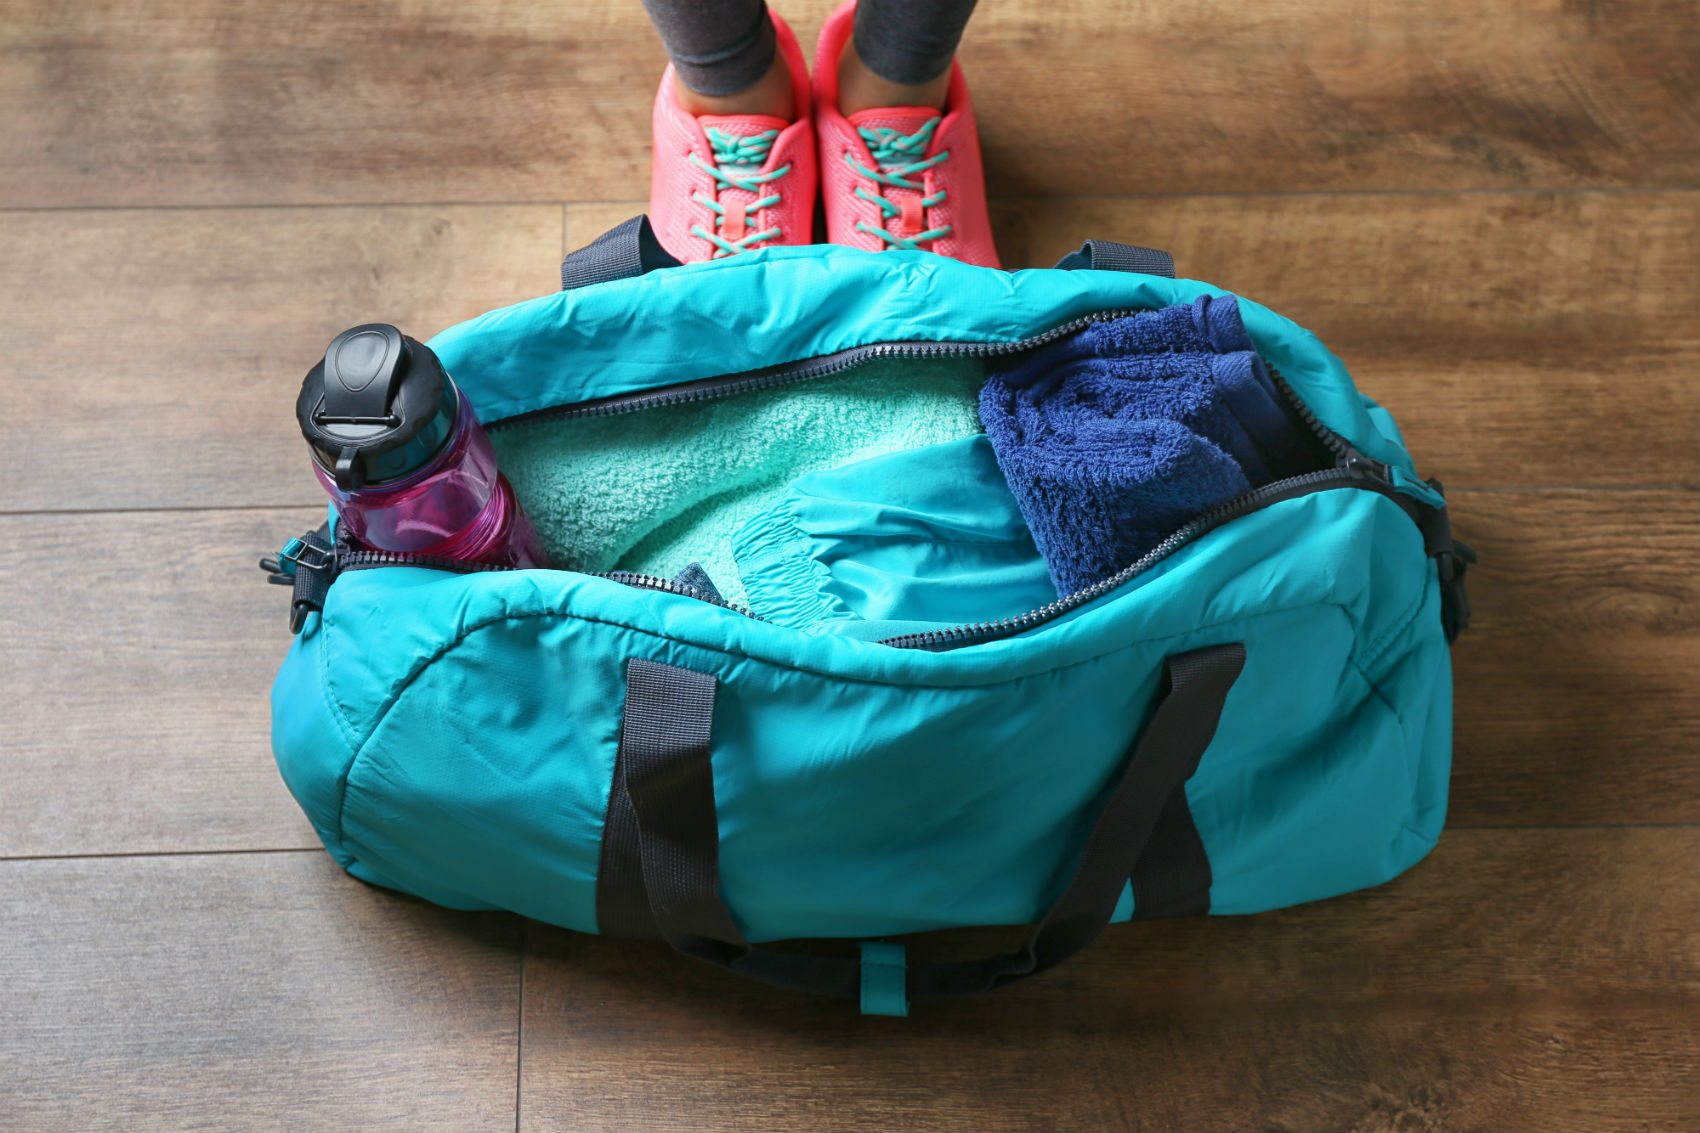 #whatsinmybag: Inspirational Gym Bag Supplies